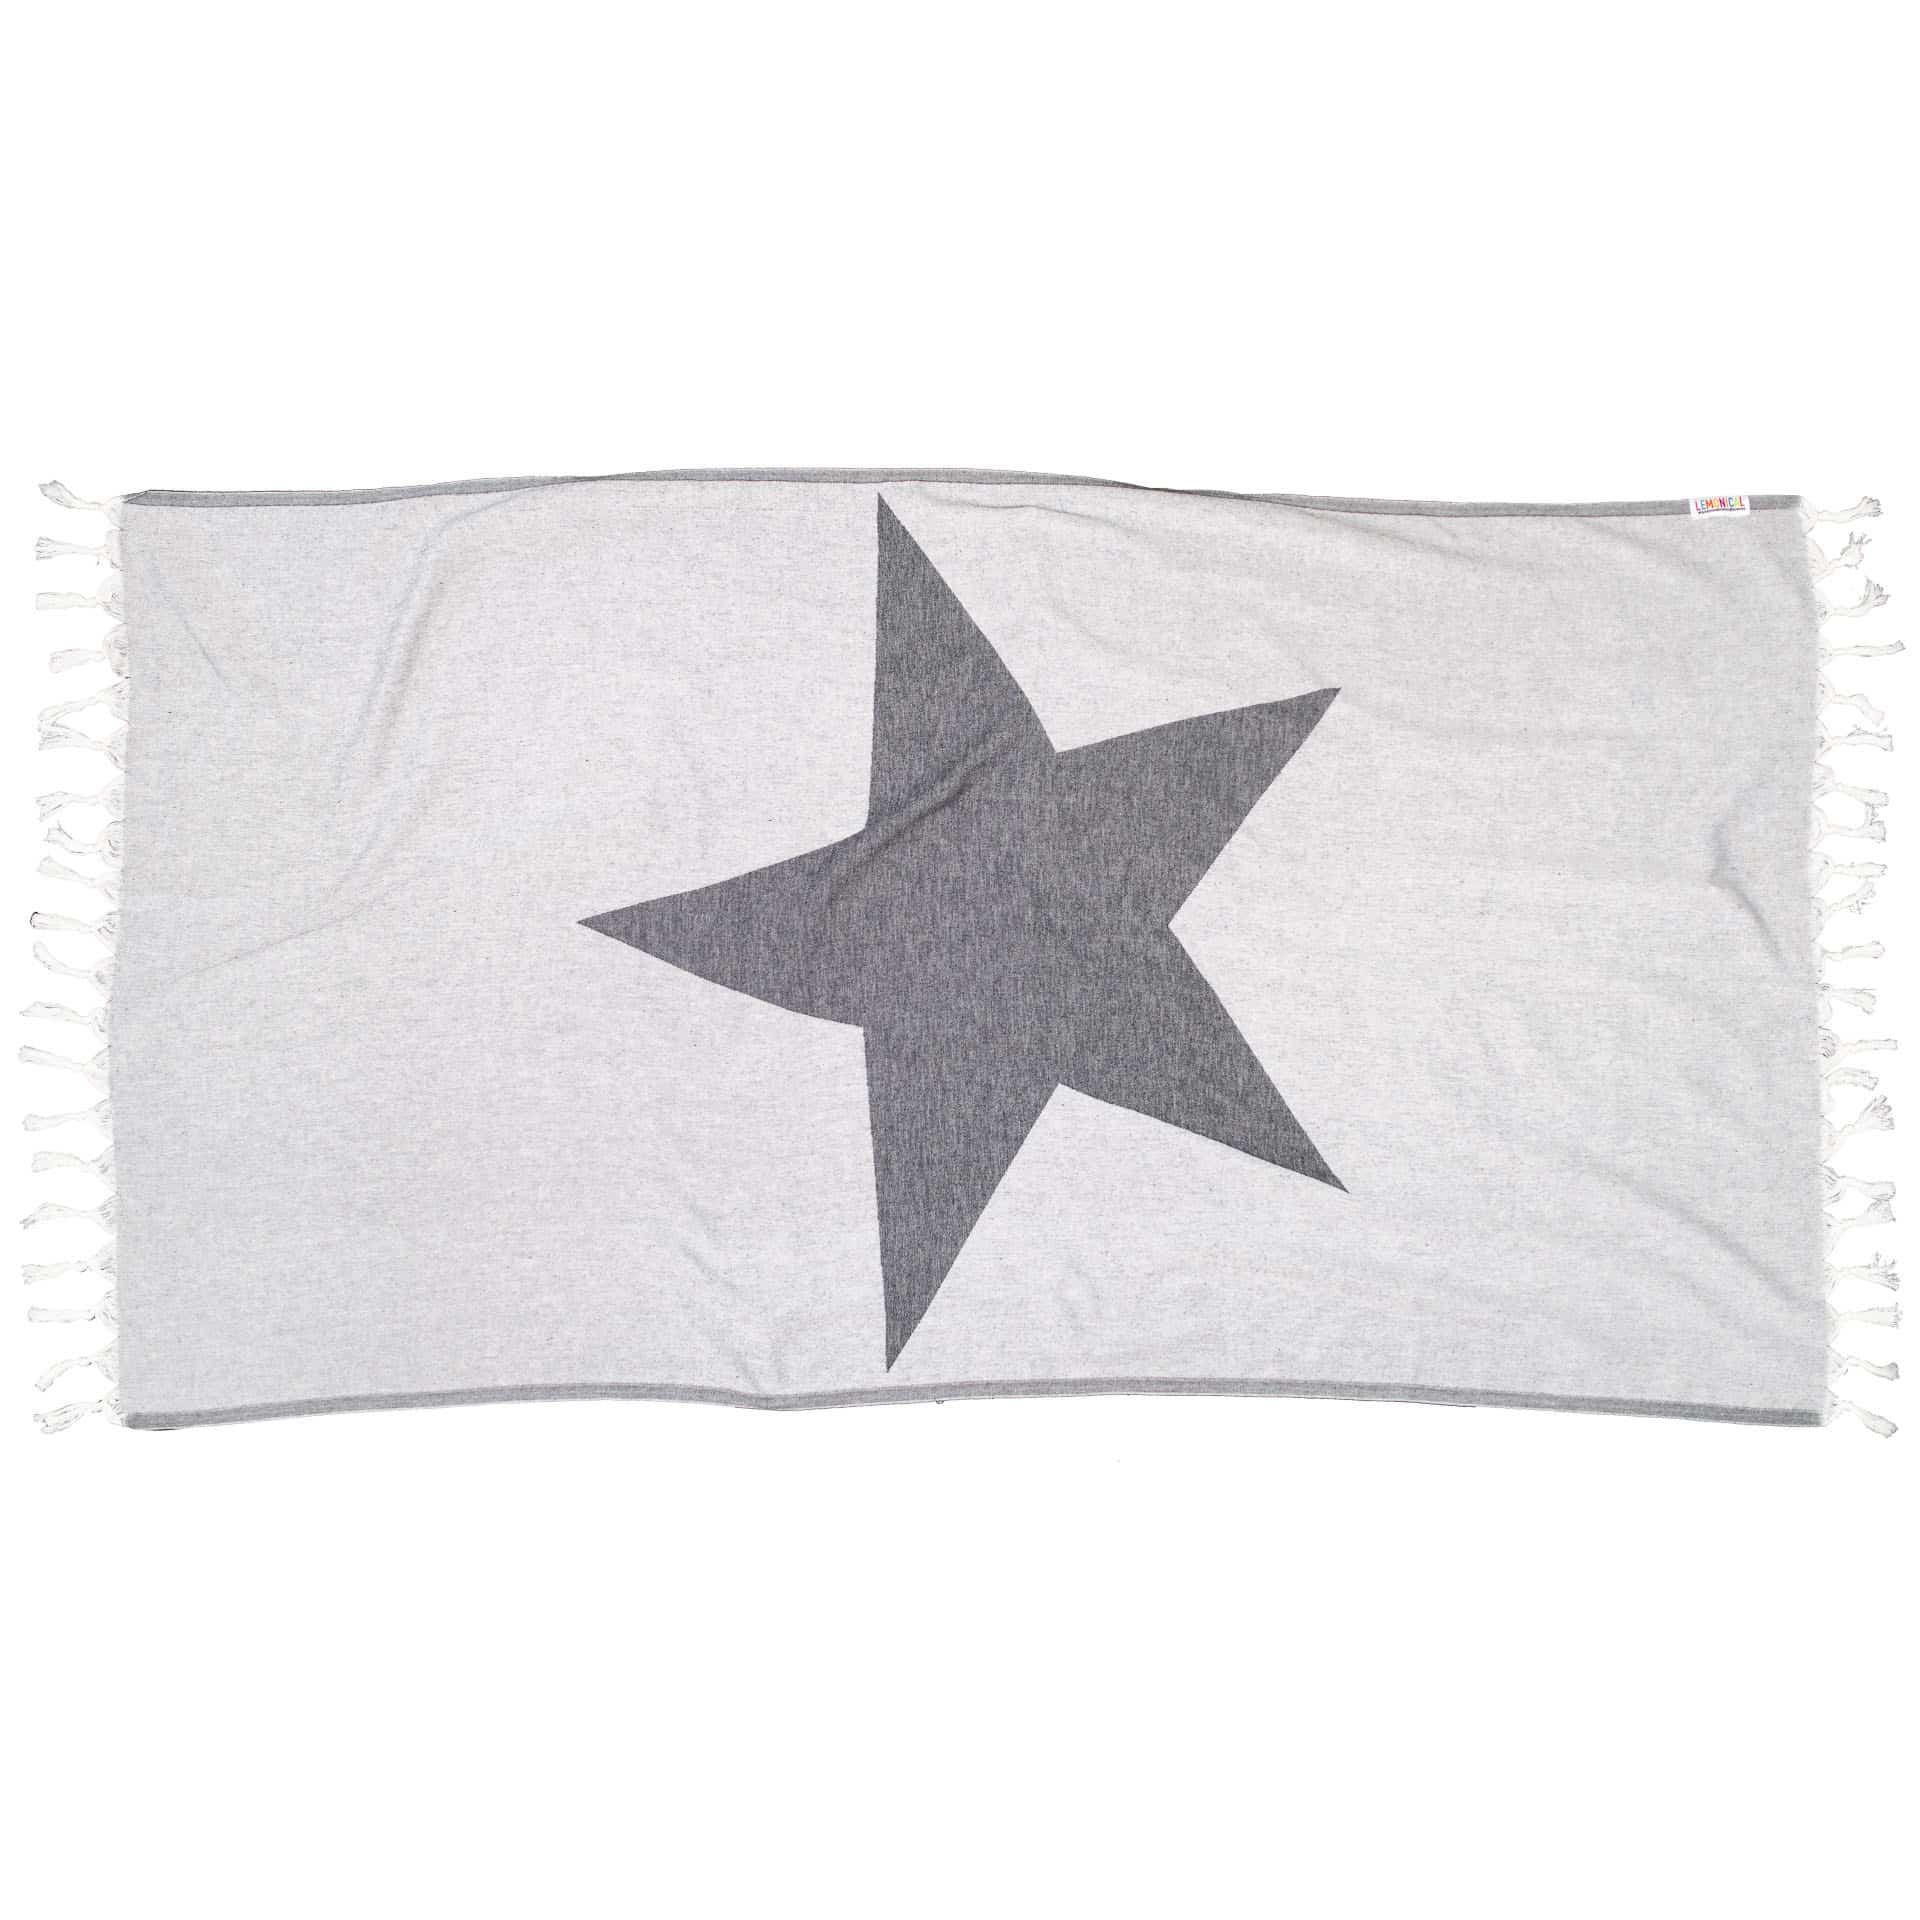 BLACK STARFISH TOWEL 130 LEMONICAL